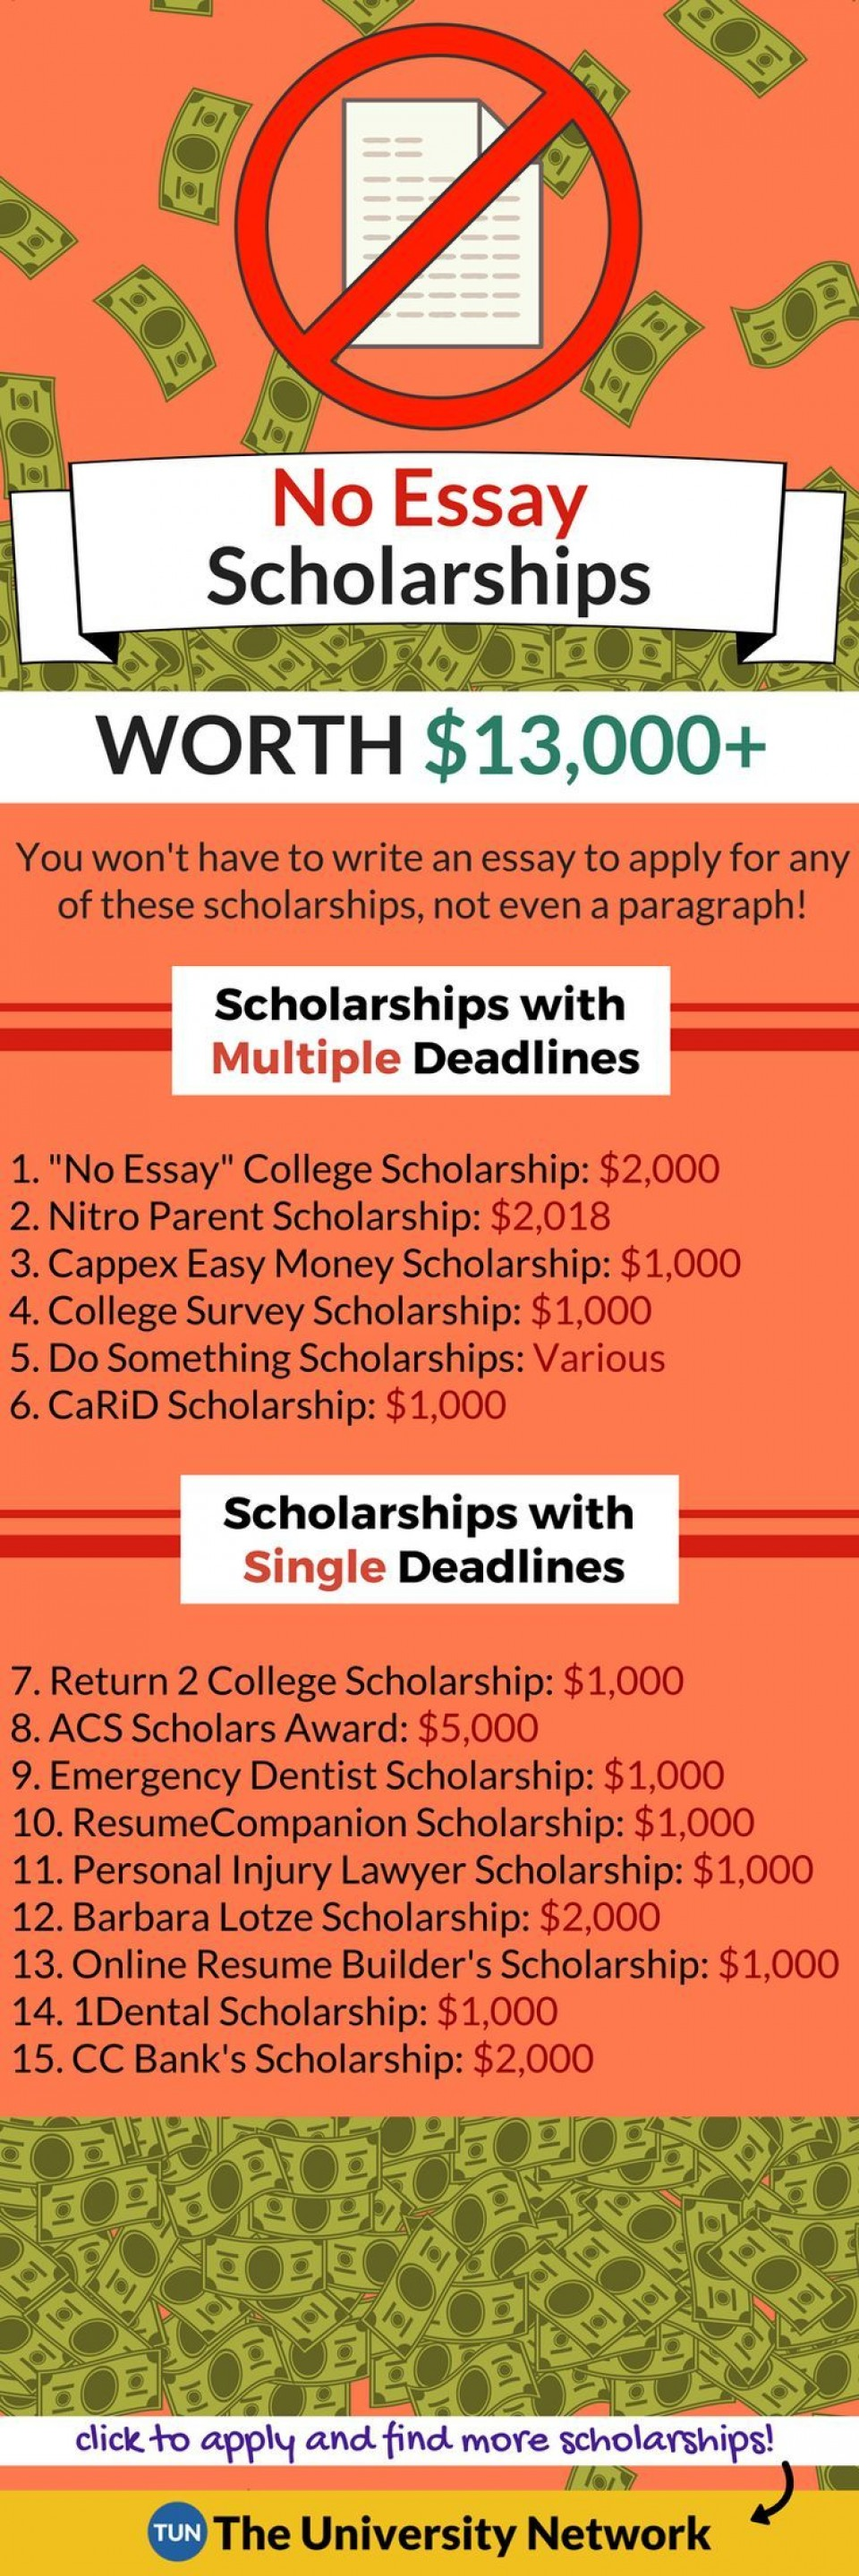 013 Essay Example No Exceptional Scholarships For Undergraduates High School Seniors College Students 2019 960